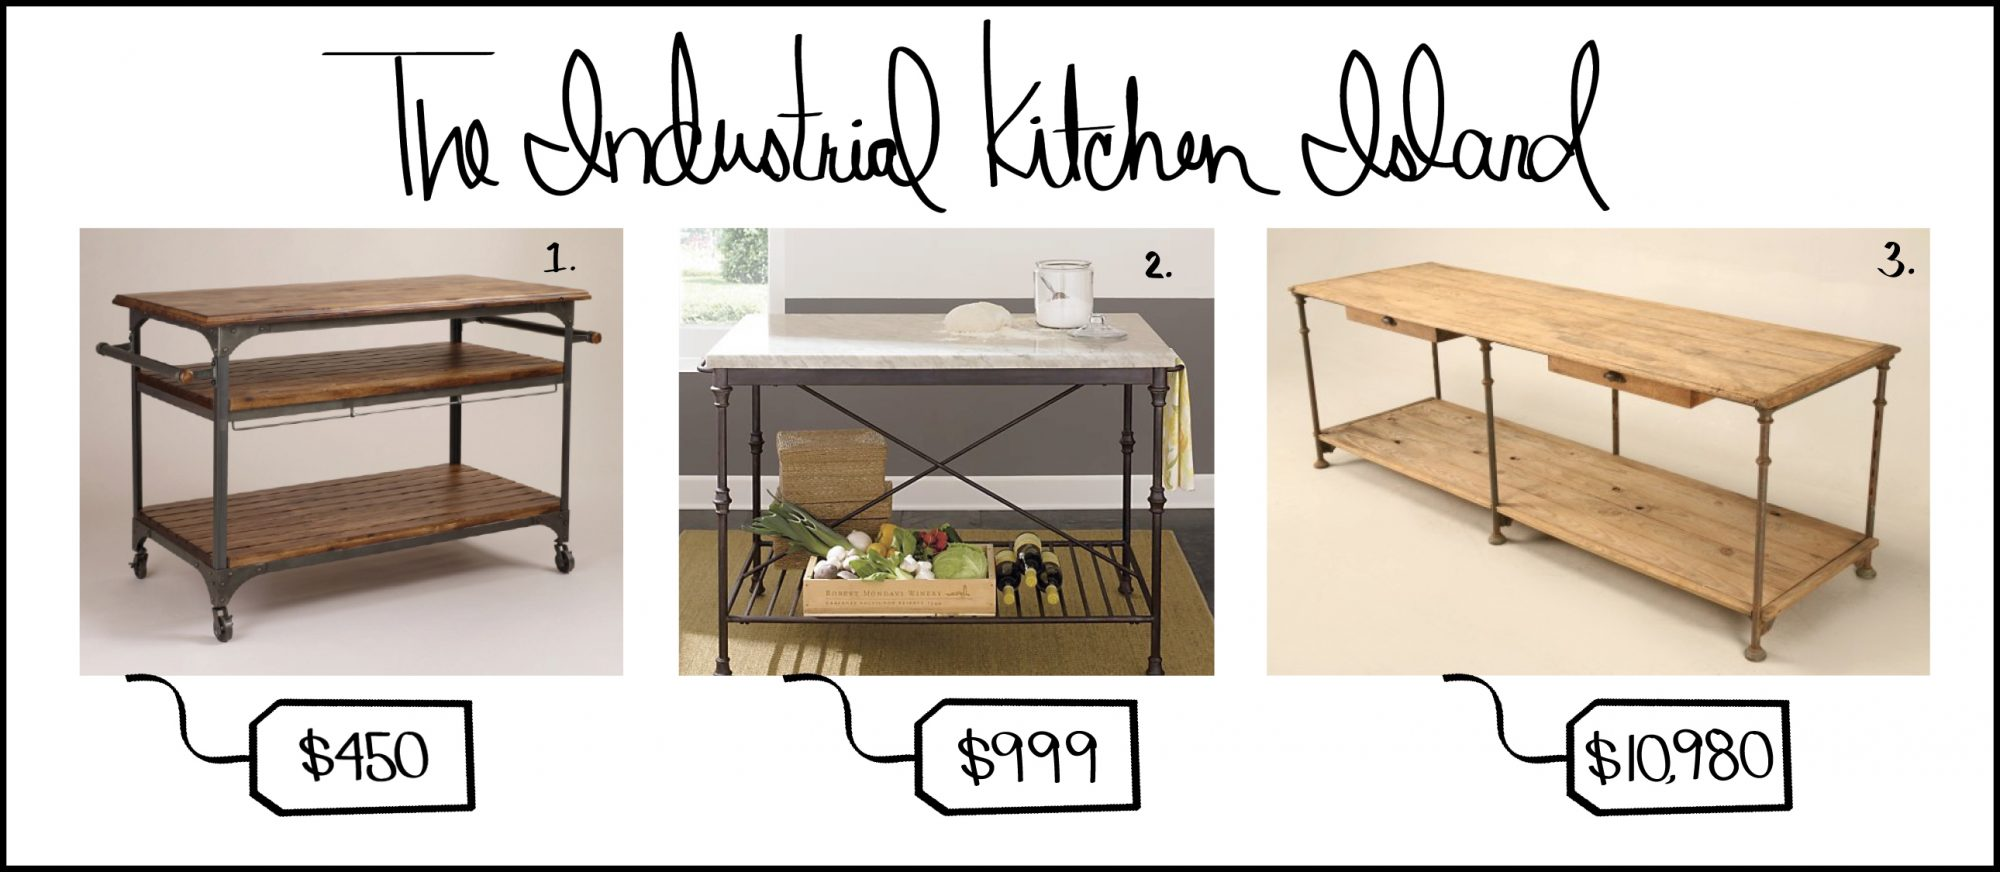 Beautiful Industrial Kitchen Island